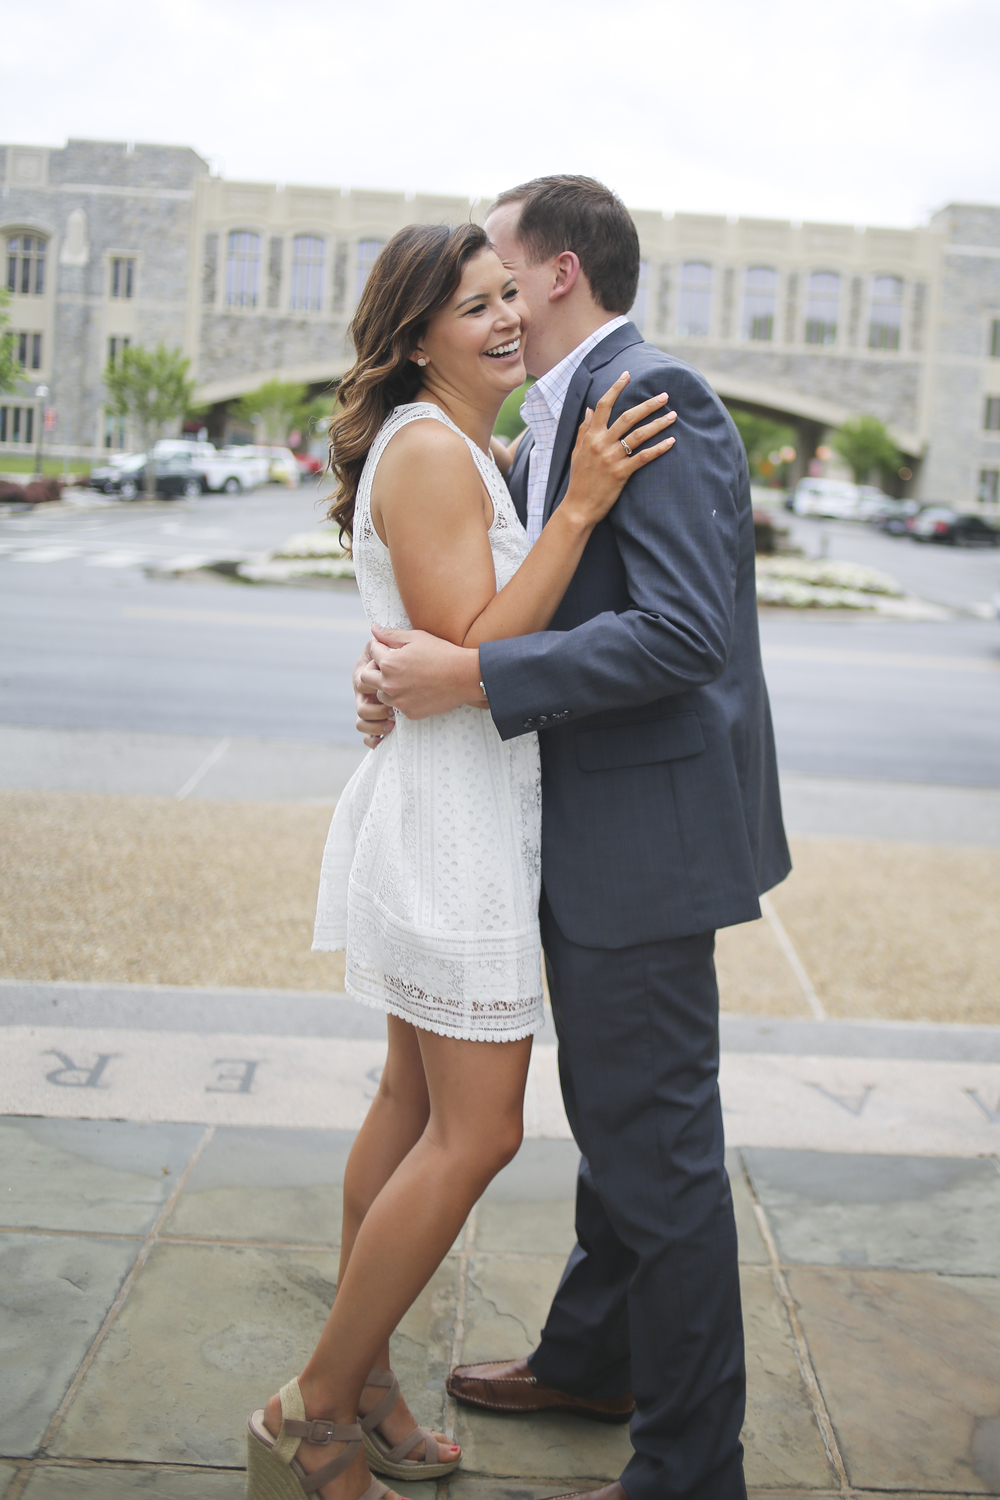 Blacksburg-Engagement-Photographer-Proposal